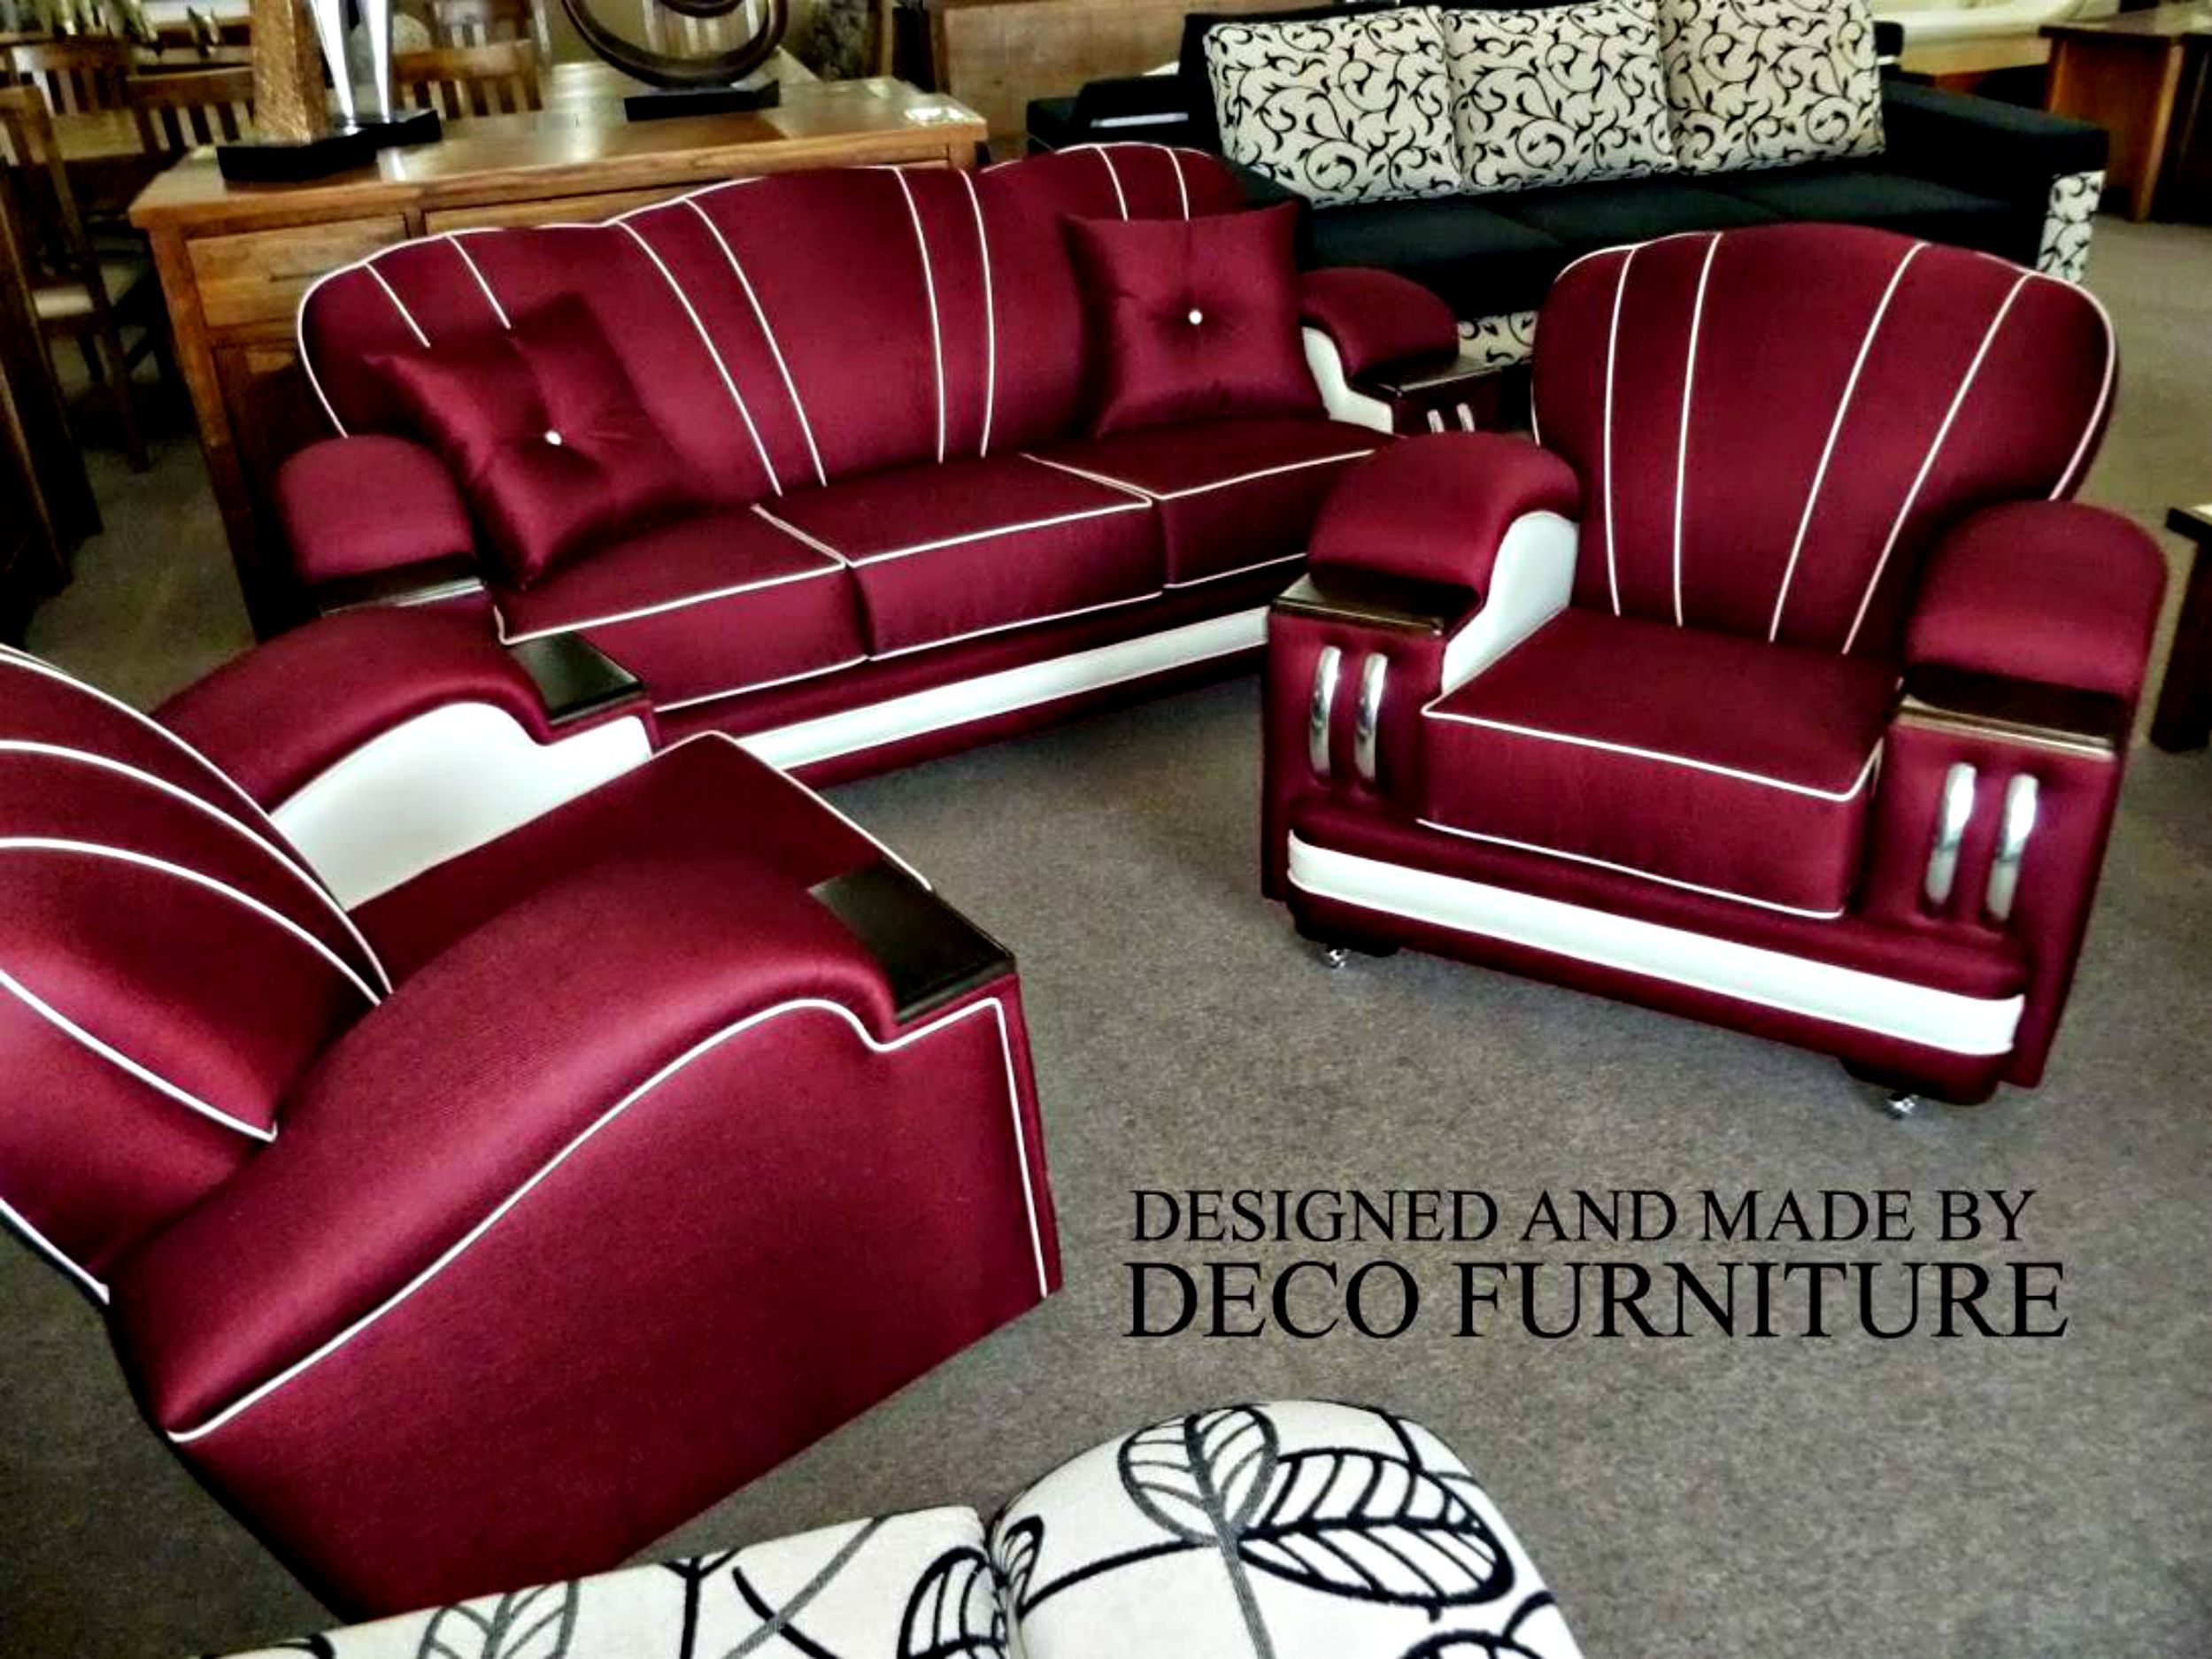 brand new Australian made. made by deco furniture 100